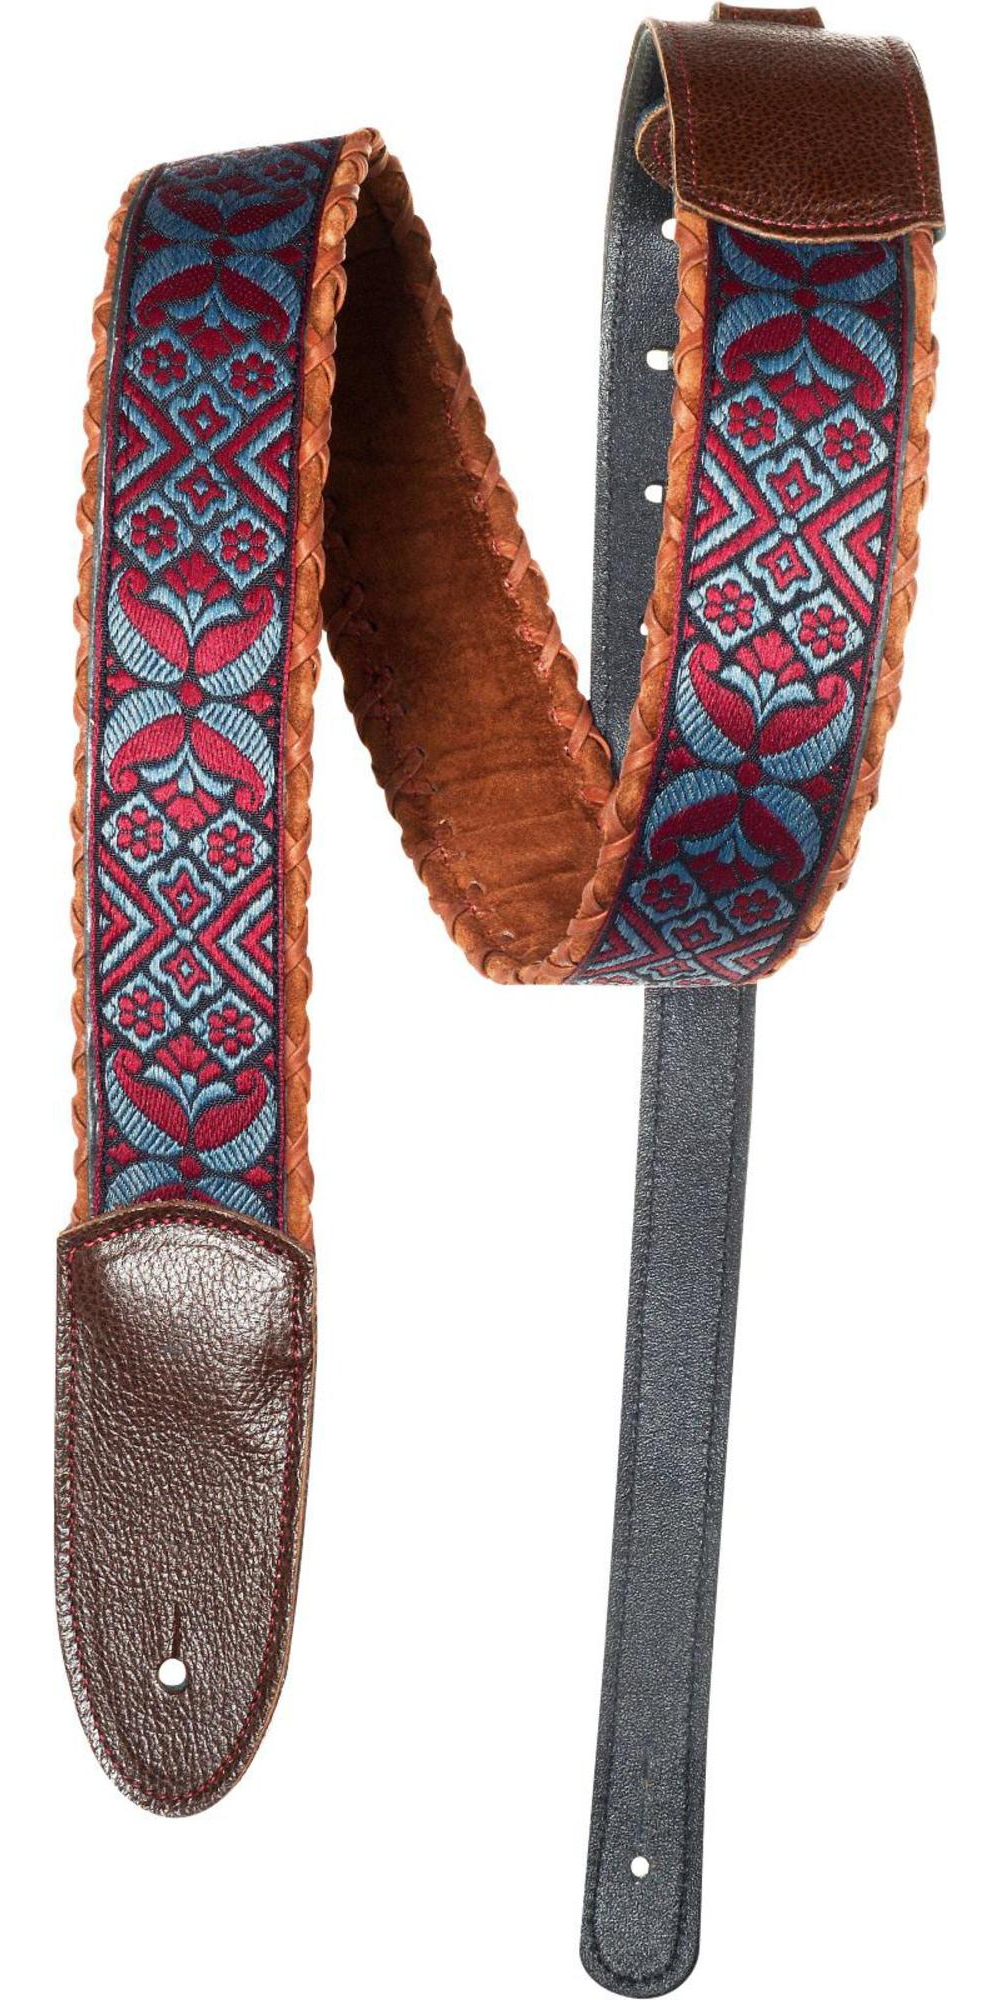 Jodi Head Monster Brown Lace Guitar Strap Brown Burgandy 2 in. by Jodi Head